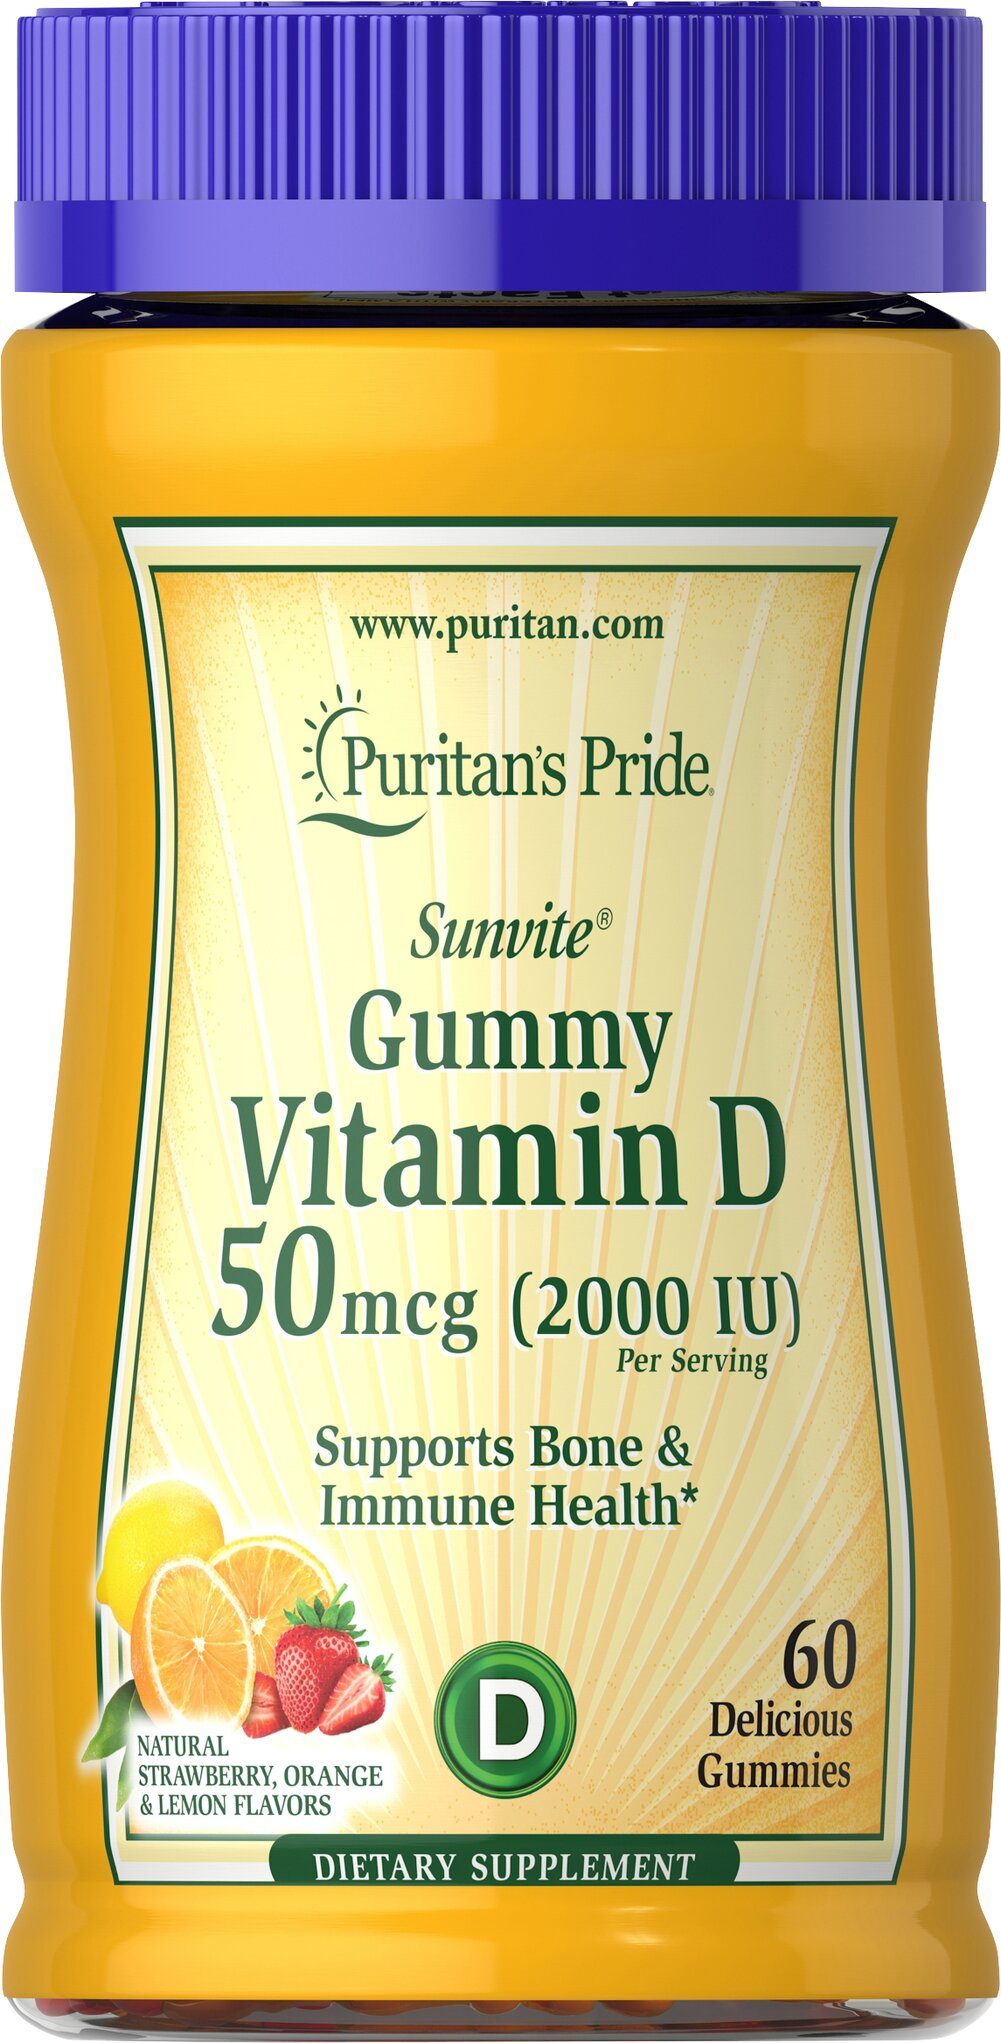 Vitamin D3 2000 IU (per serving) Gummies Thumbnail Alternate Bottle View